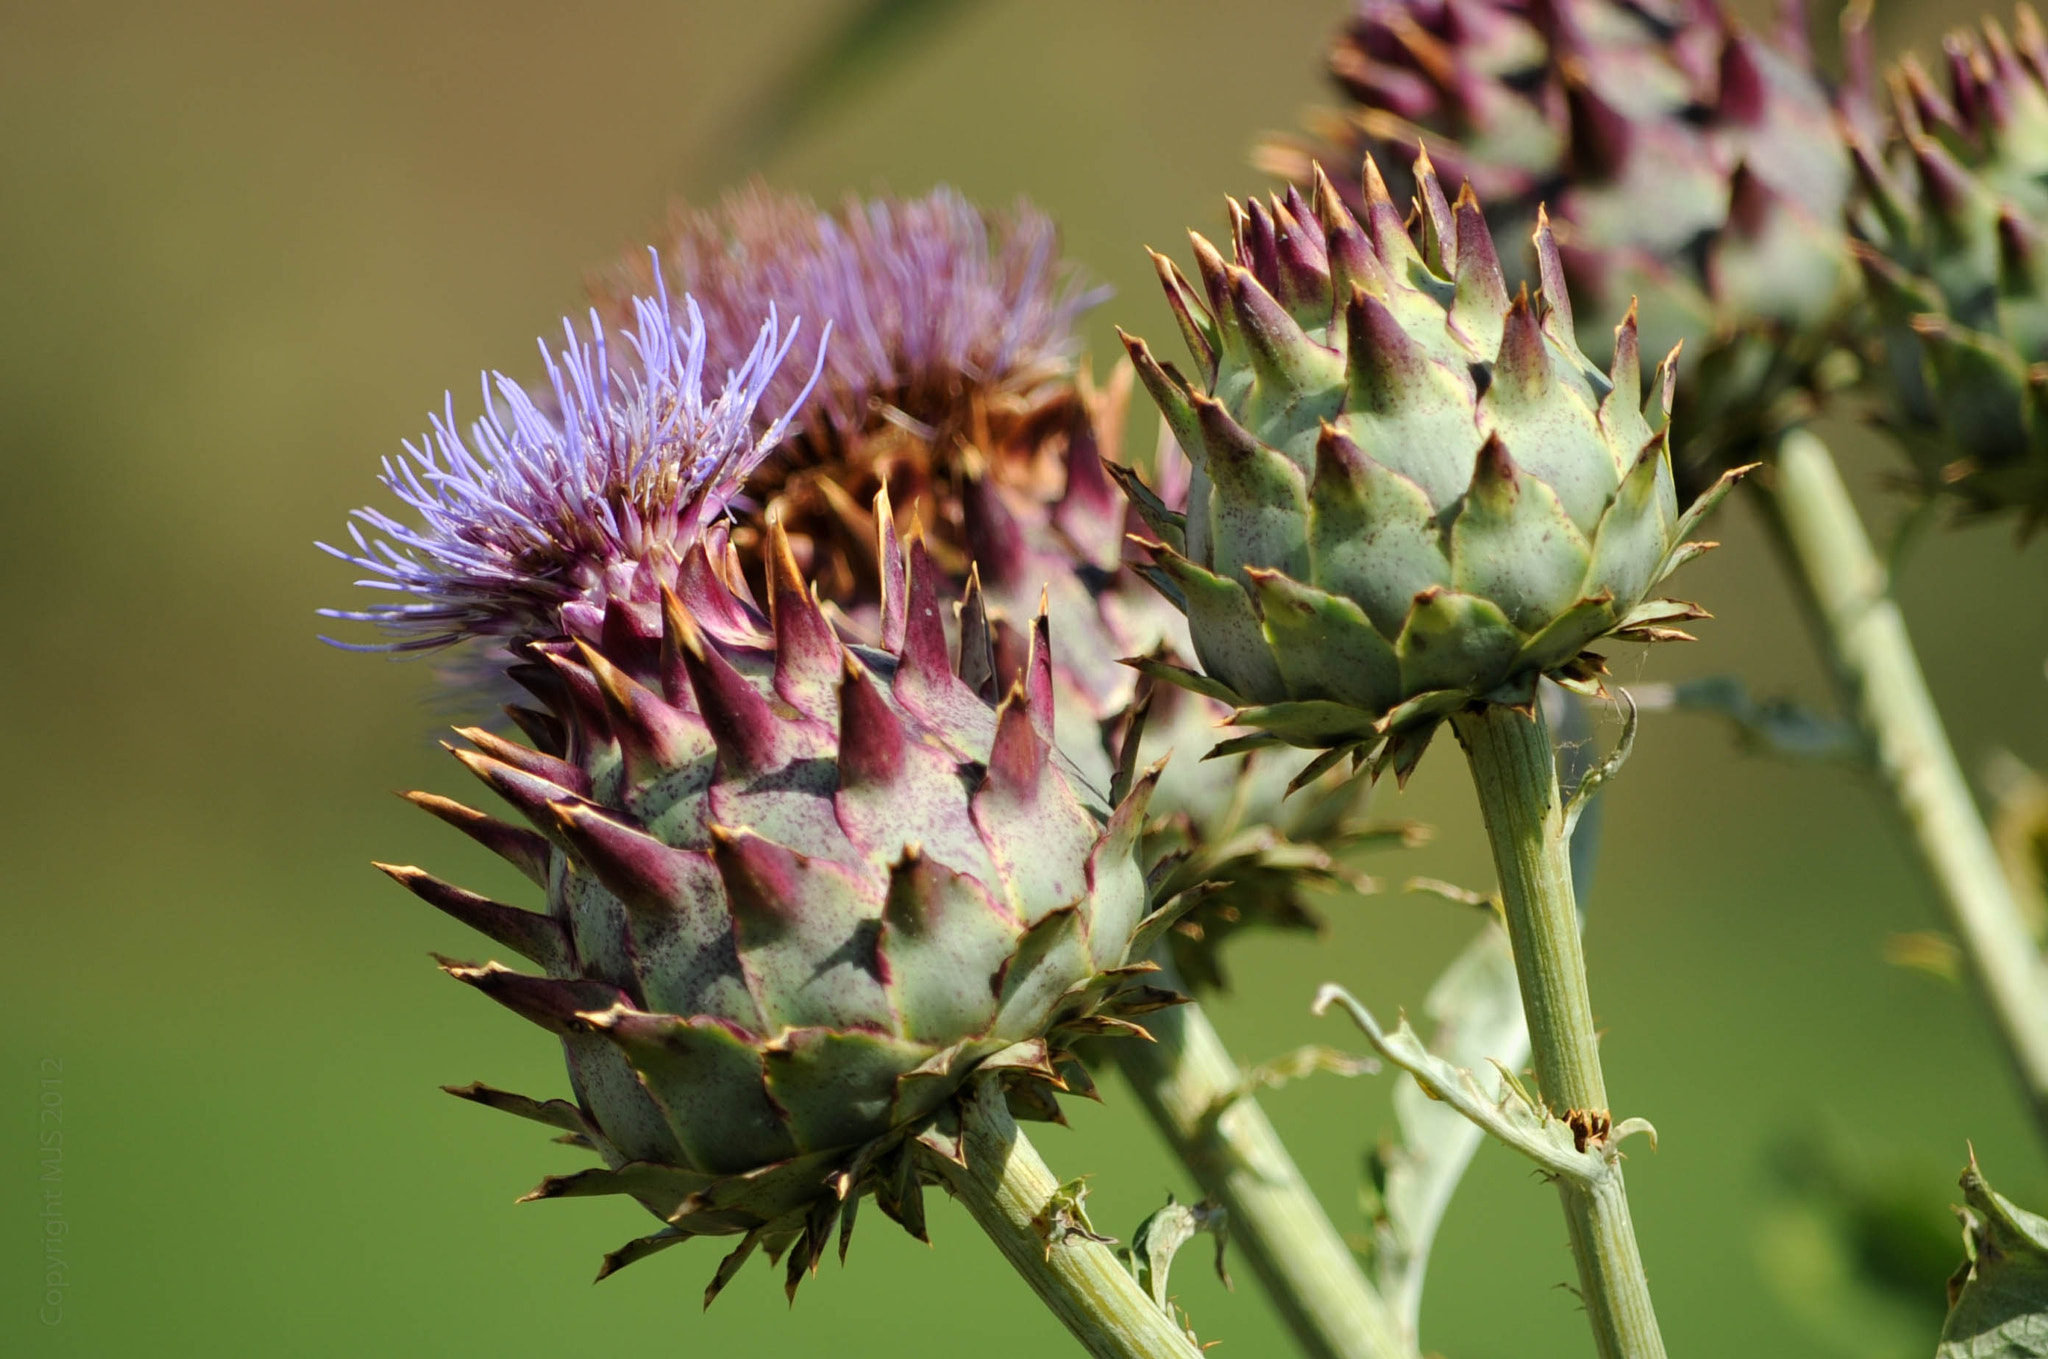 Photograph Thistles, Wrest Park by Mike Smith on 500px